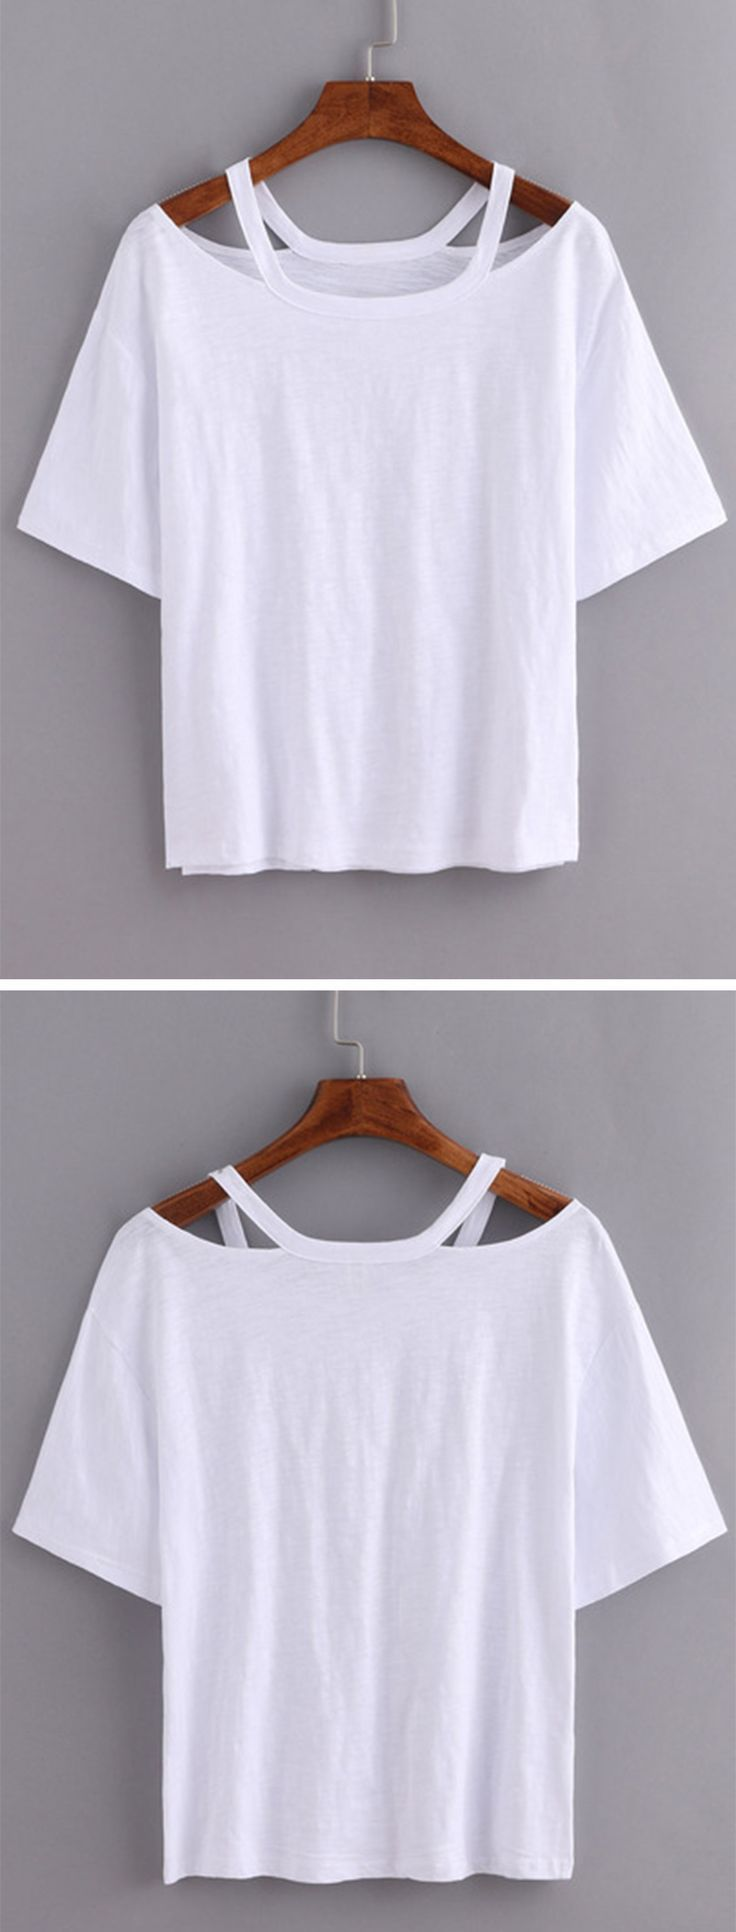 Cutout Loose-Fit White T-shirt with